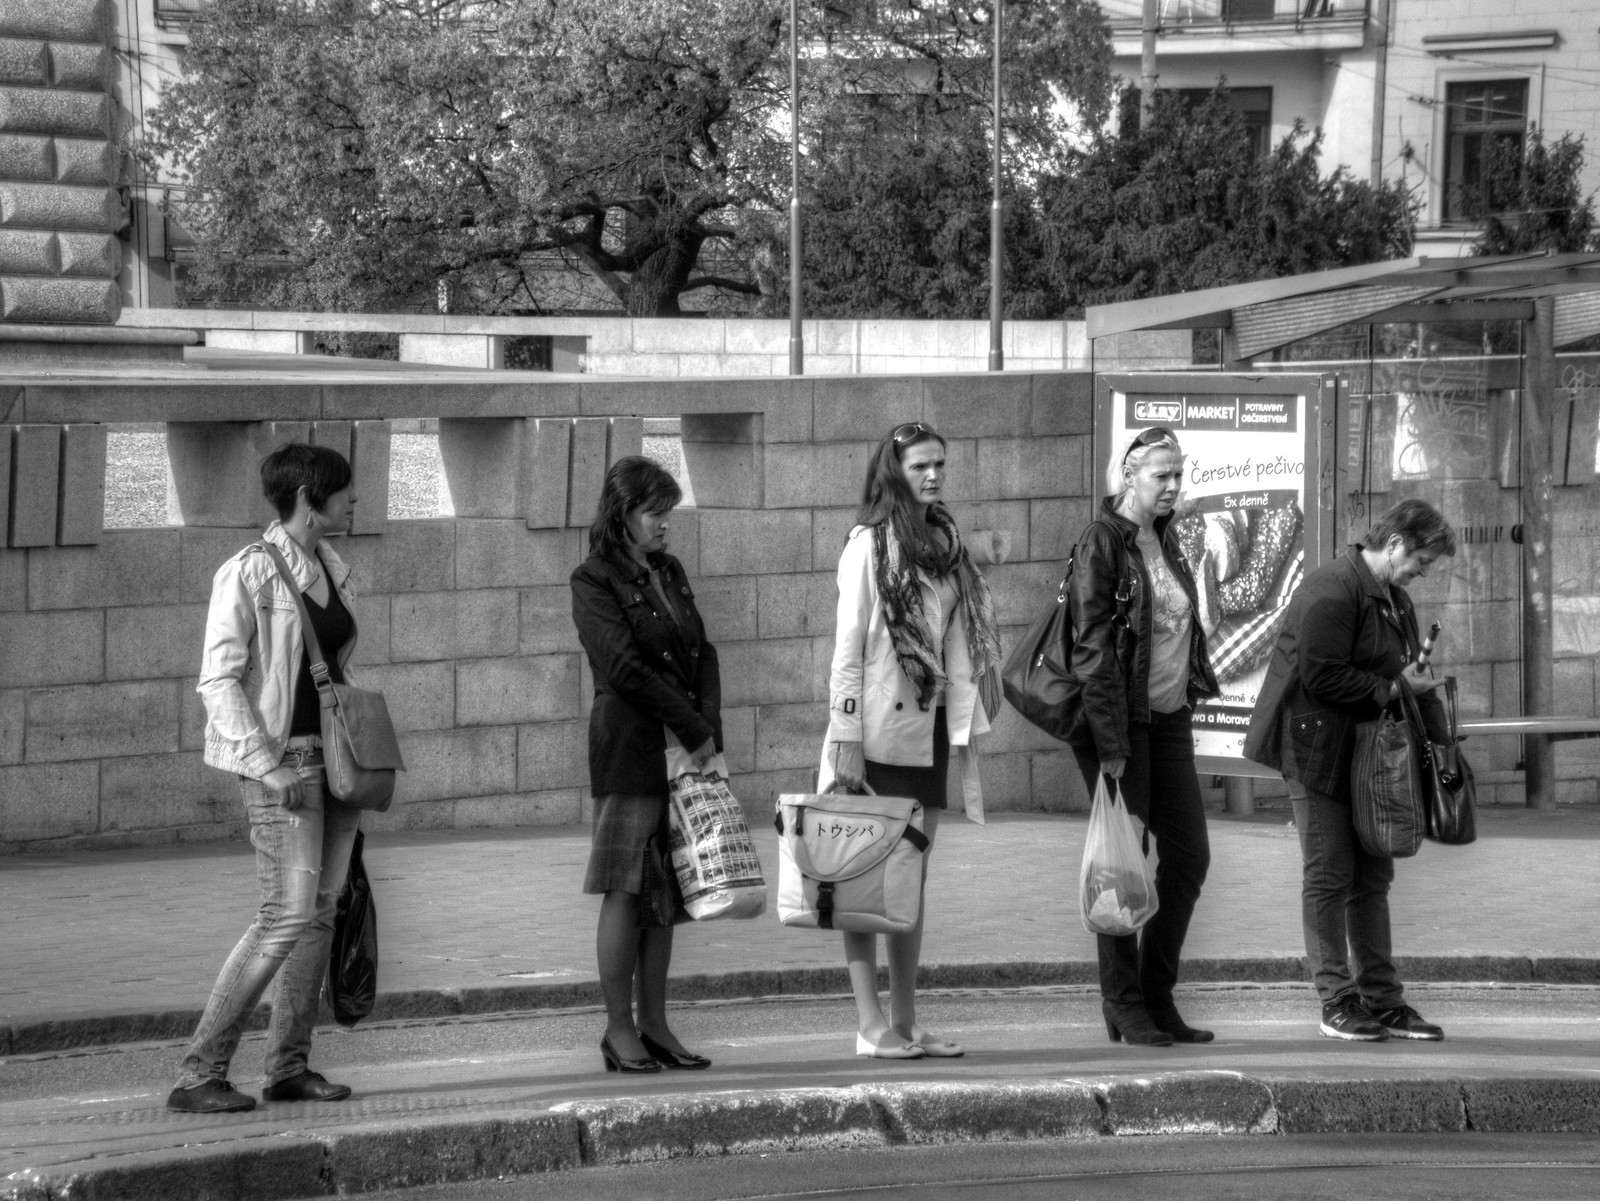 Five Women at Tram Stop (Monochrome)